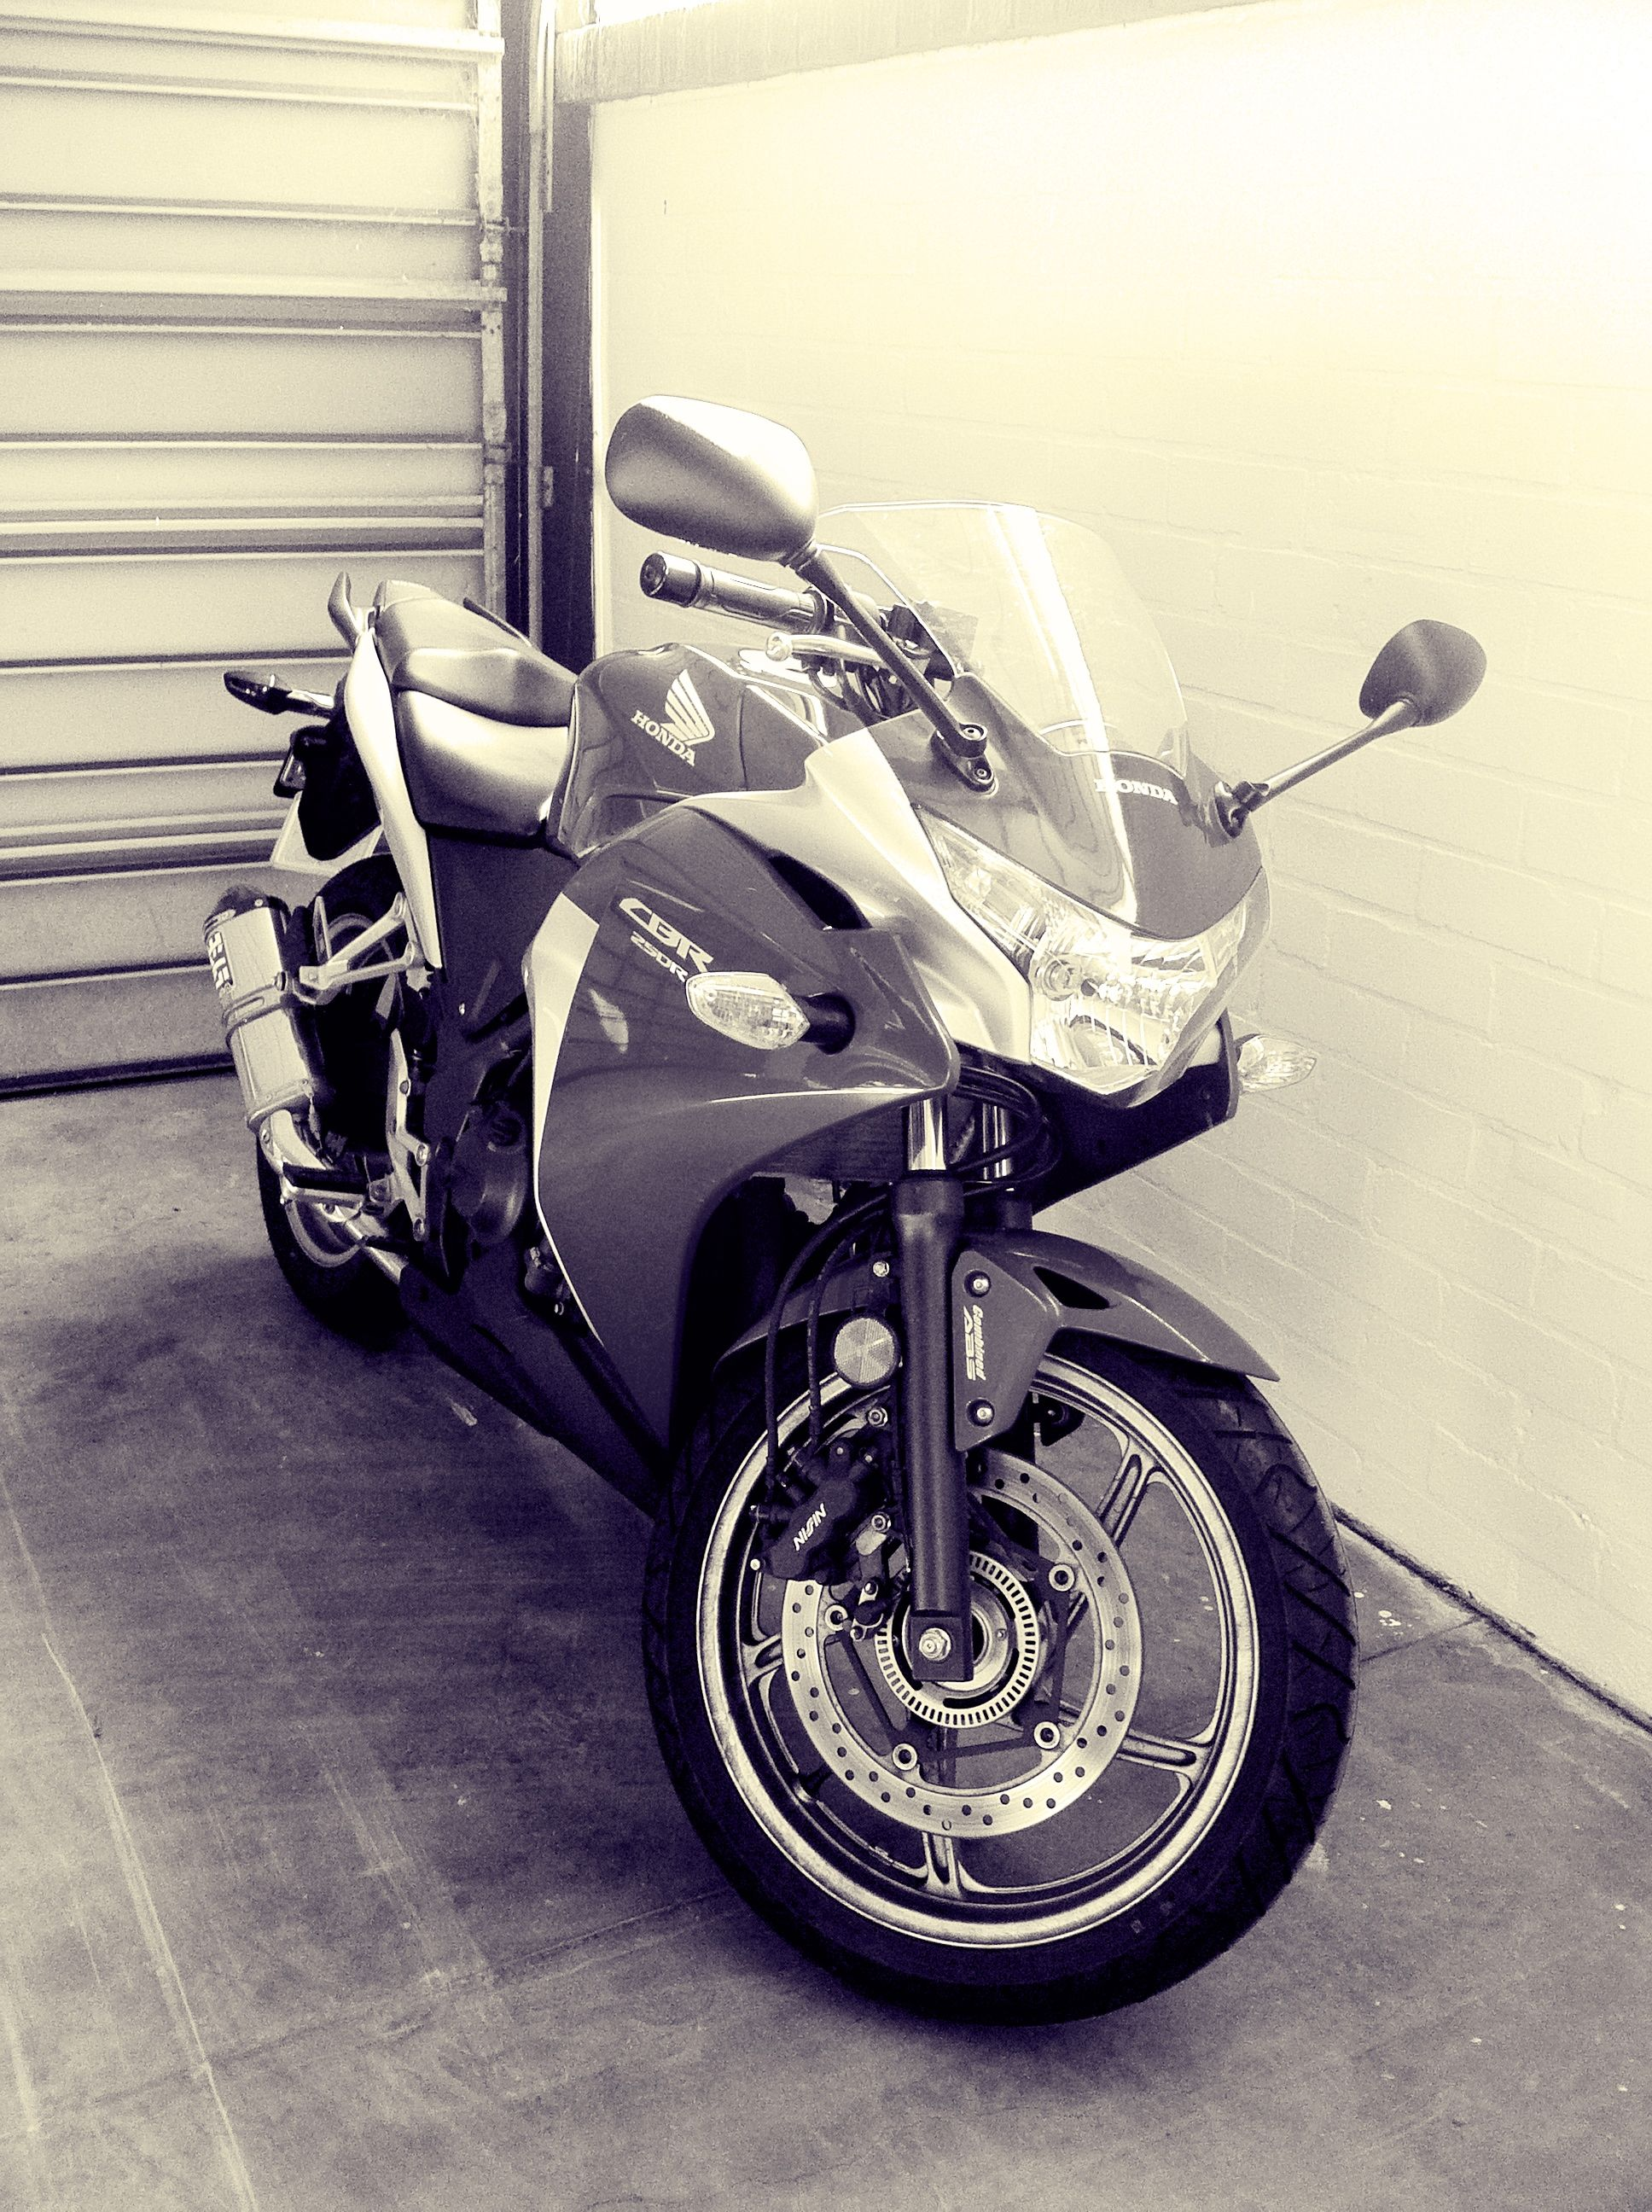 This is my Honda CBR250r. There are many like it, but this one is mine.